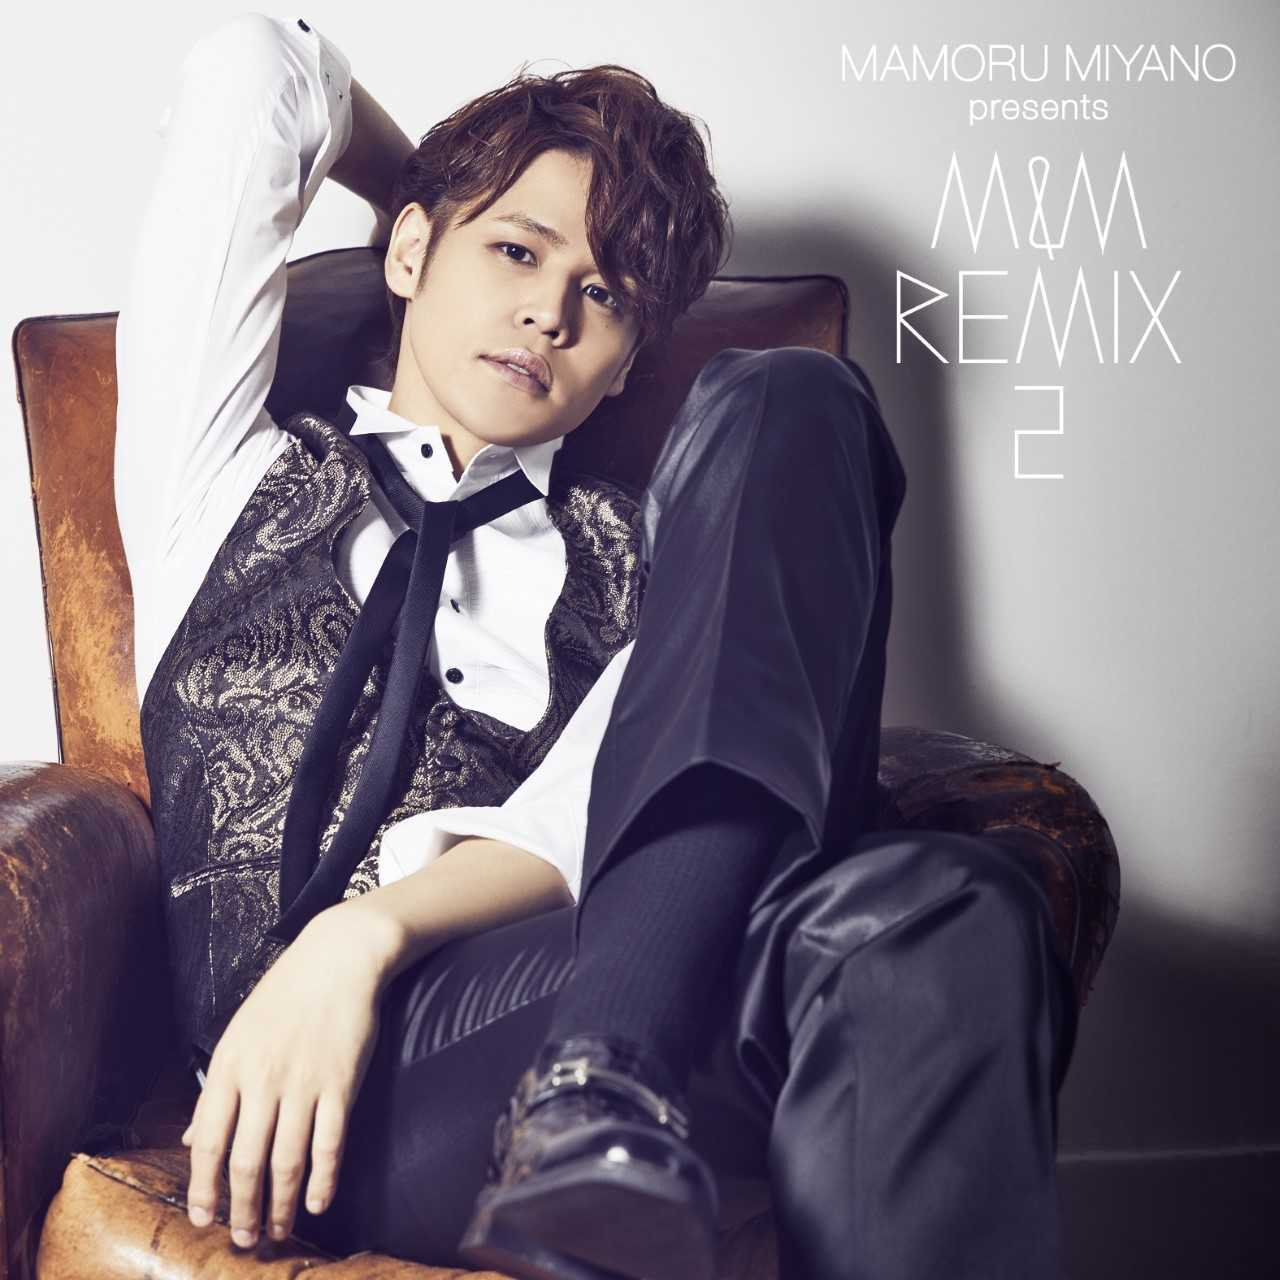 配信限定アルバム『MAMORU MIYANO presents M&M REMIX 2』